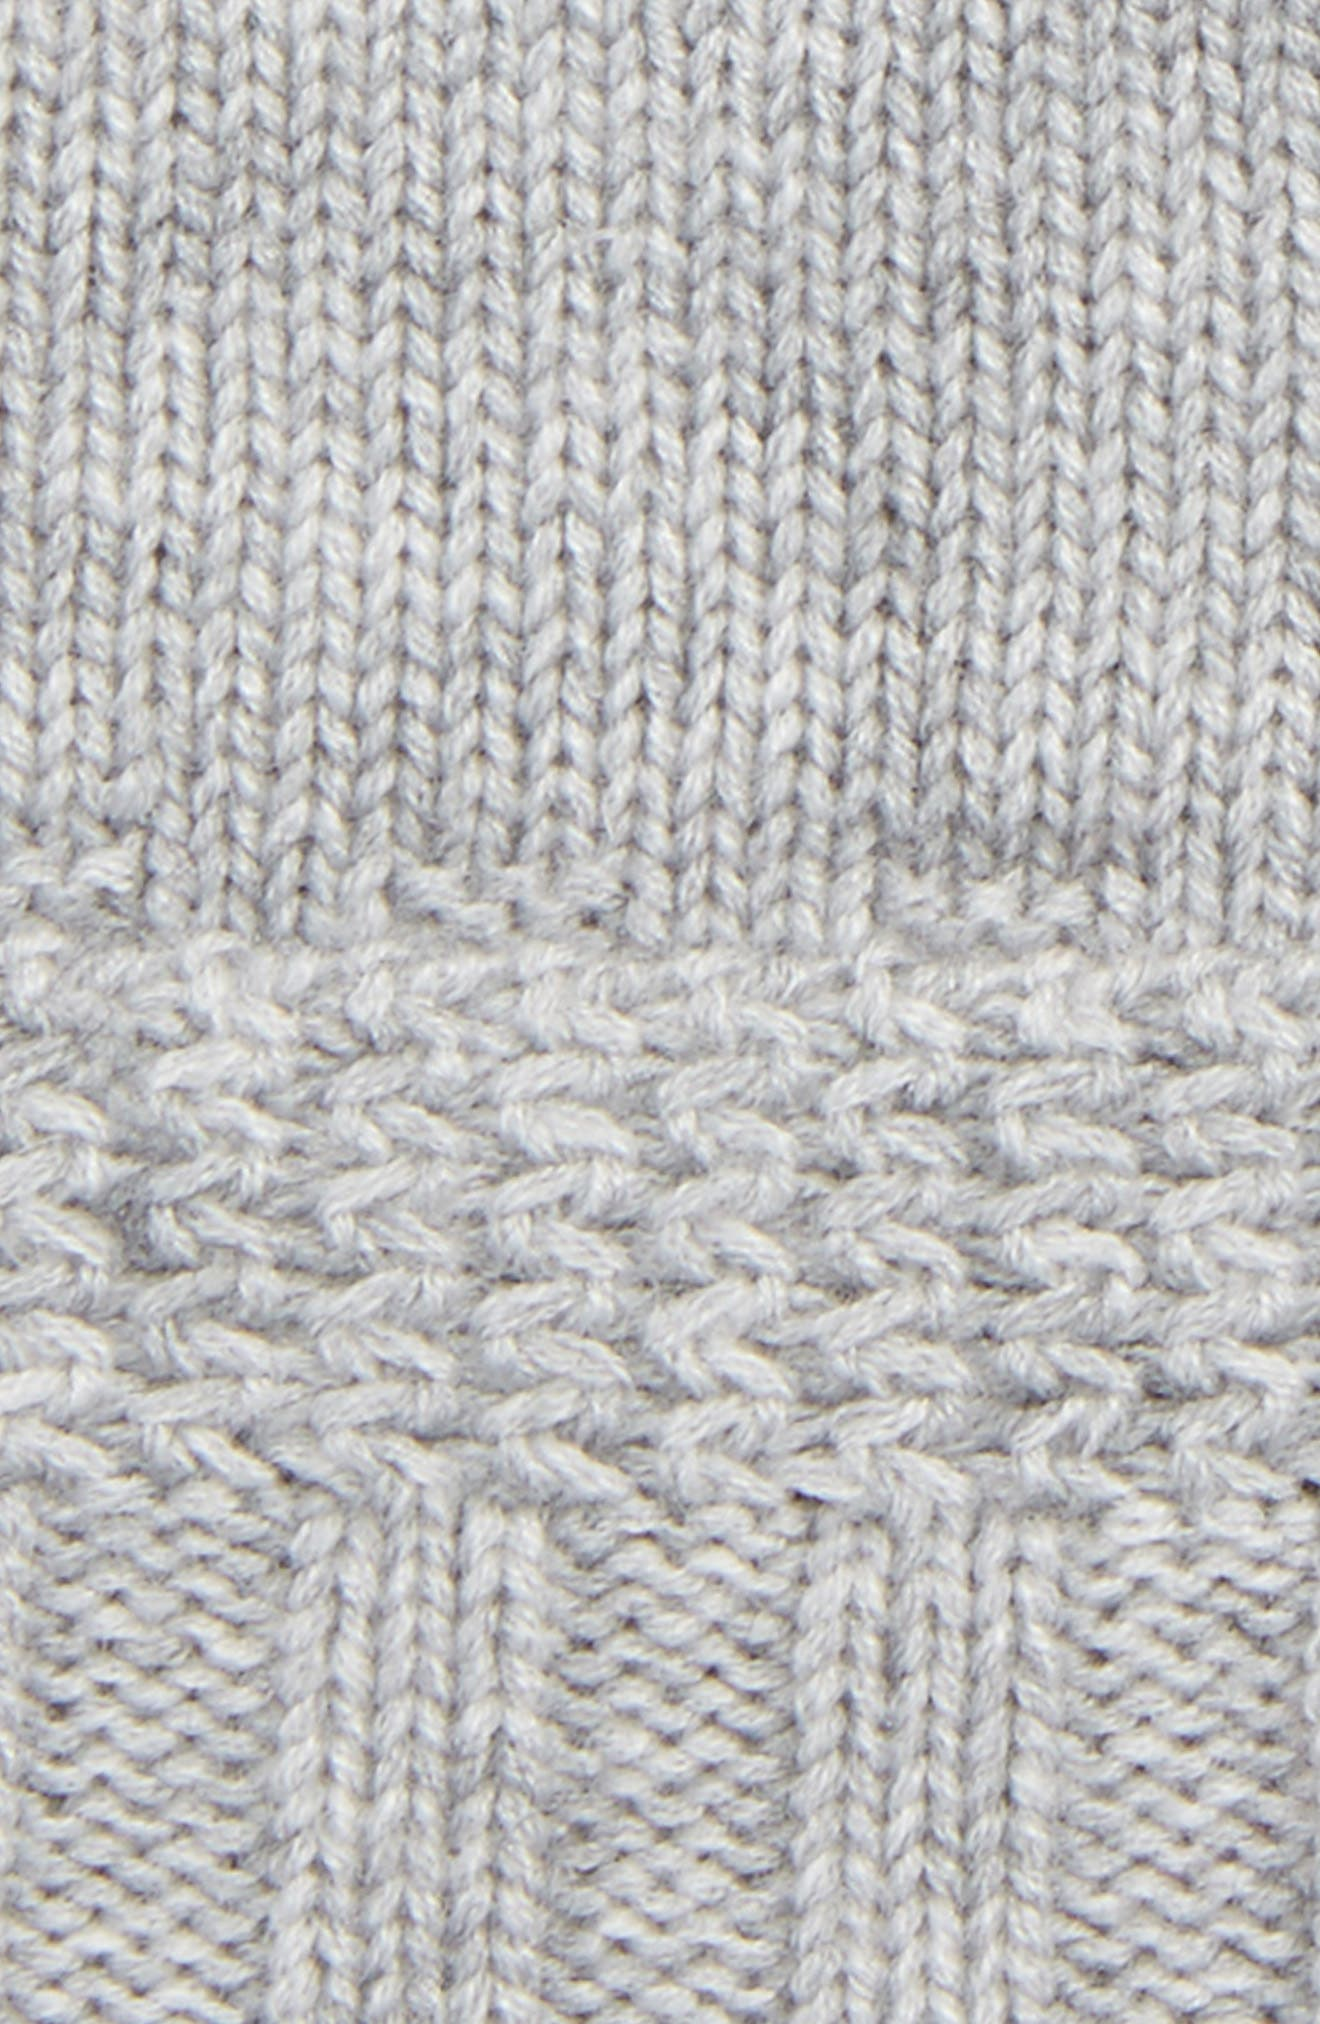 UGG<sup>®</sup> Texture Knit Fingerless Gloves,                             Alternate thumbnail 4, color,